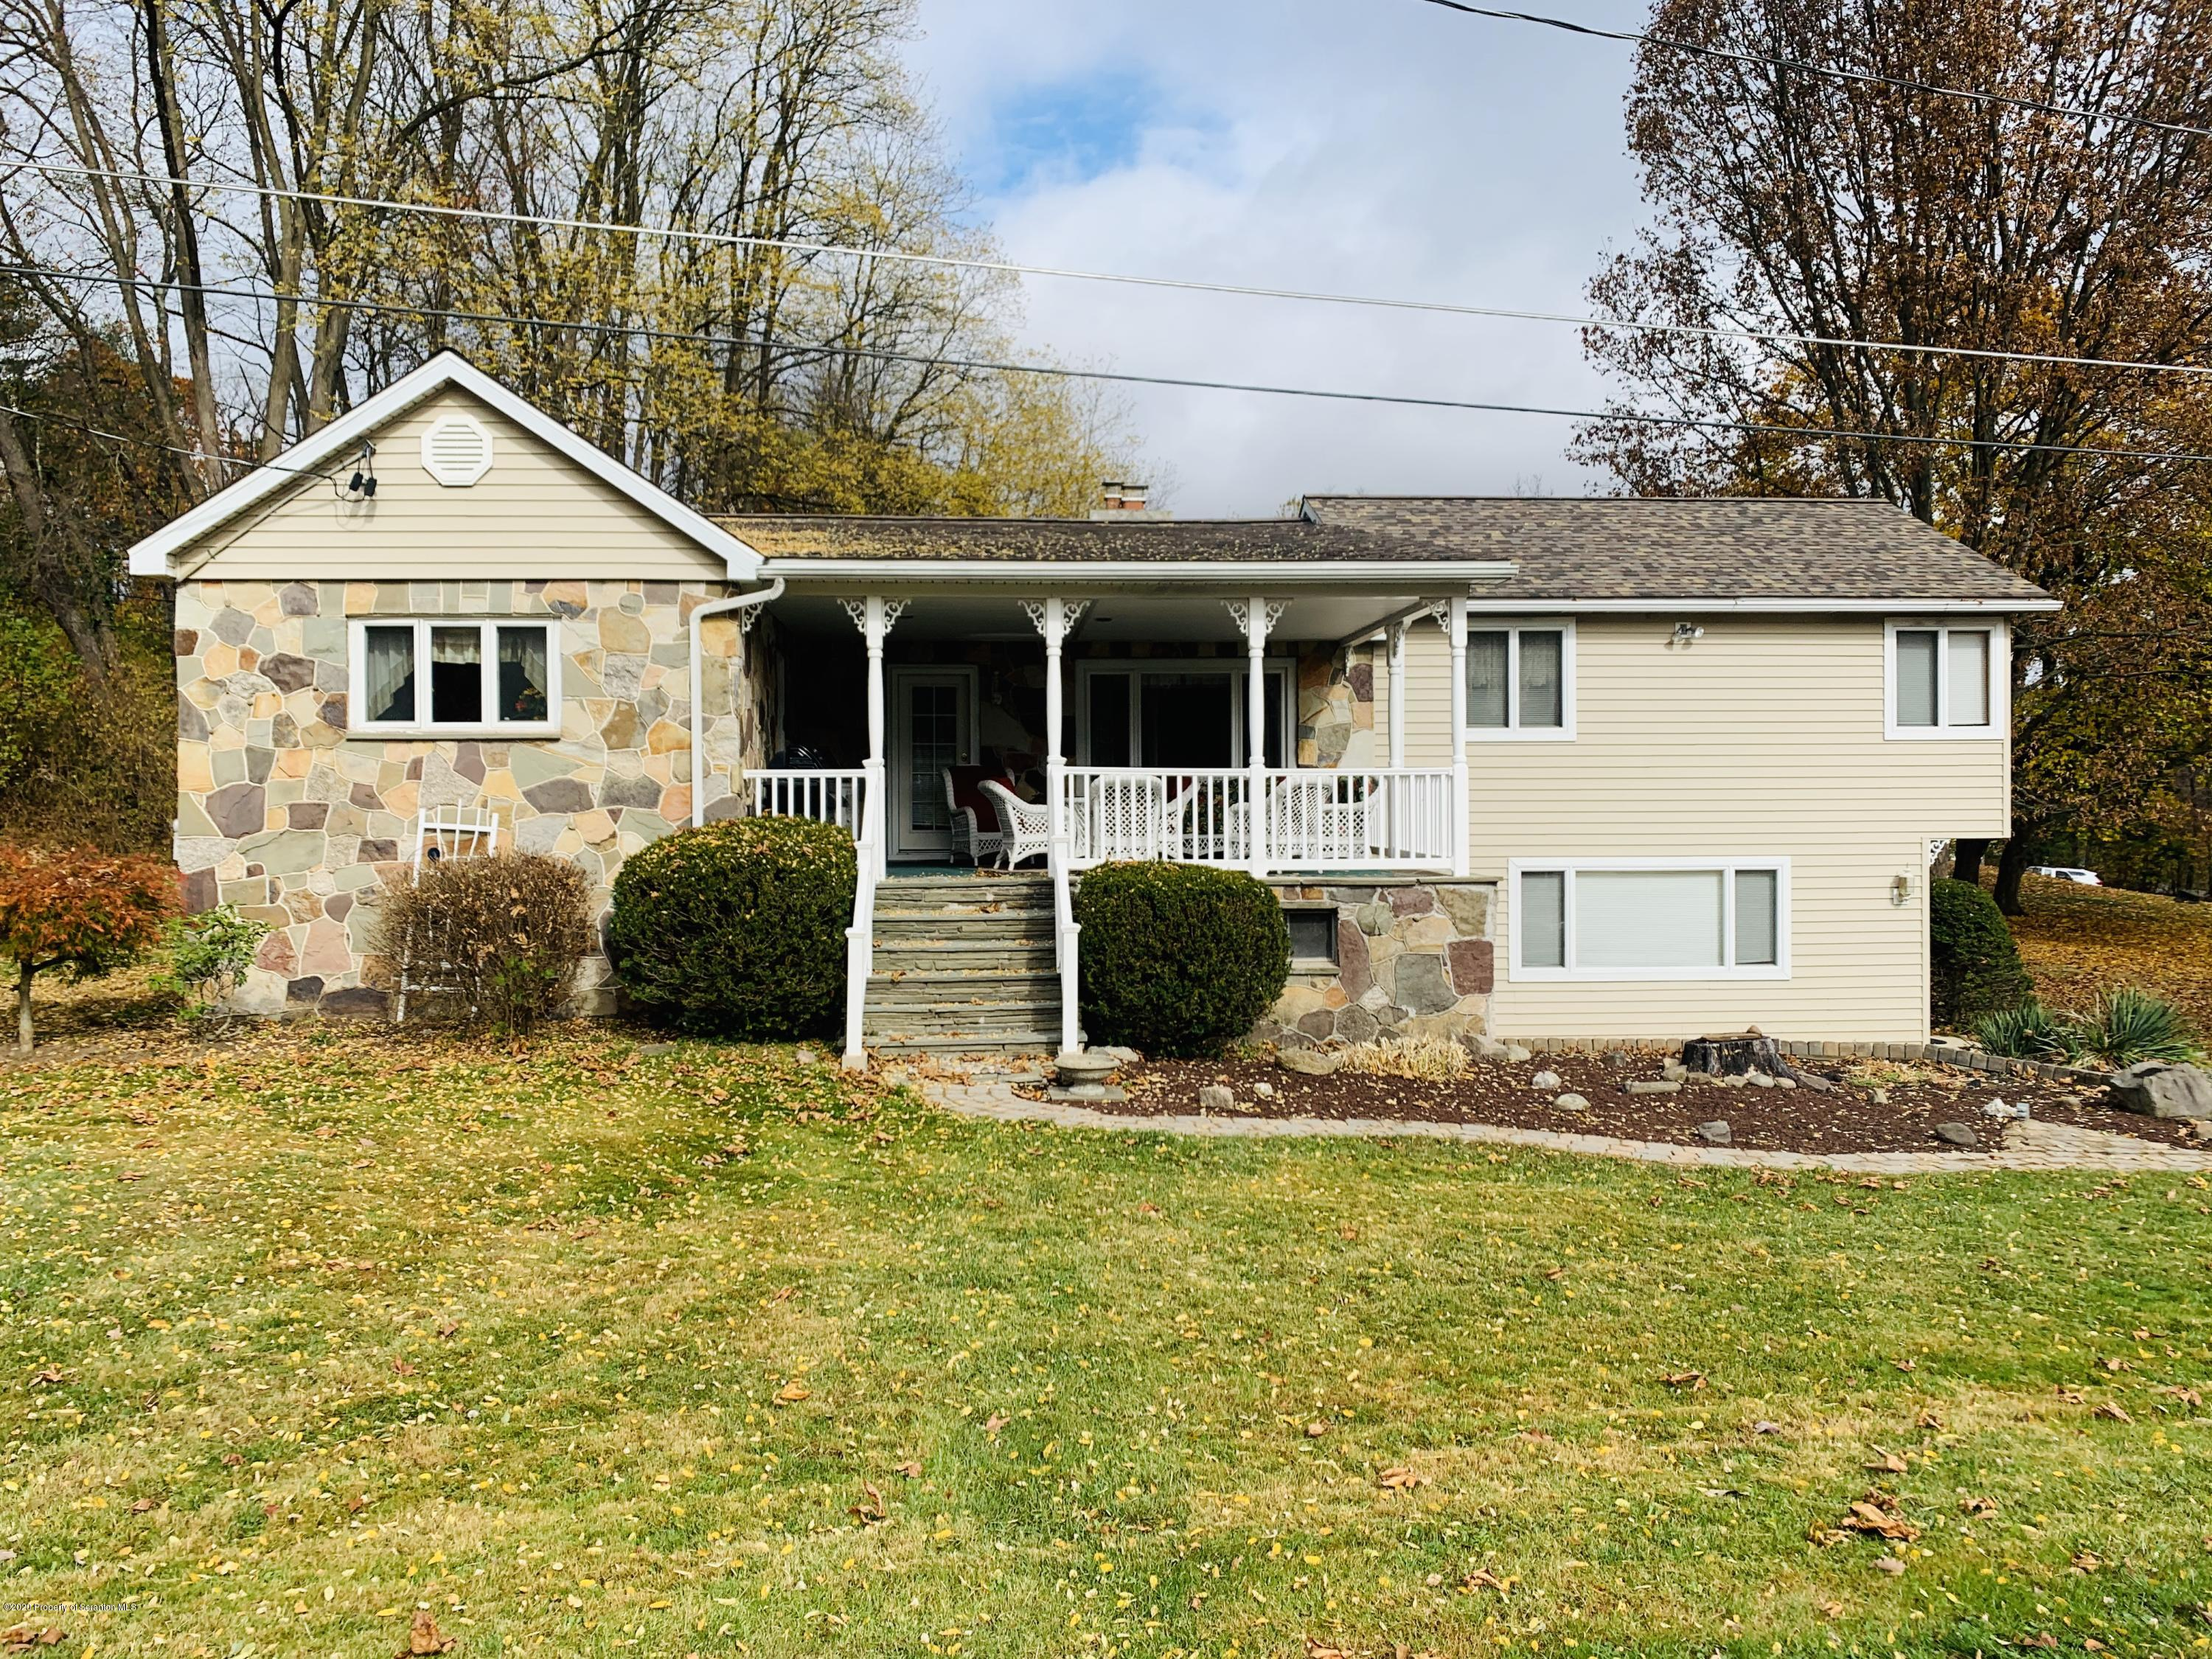 347 Woods Dr, Dalton, Pennsylvania 18414, 2 Bedrooms Bedrooms, 6 Rooms Rooms,1 BathroomBathrooms,Single Family,For Sale,Woods,20-4594